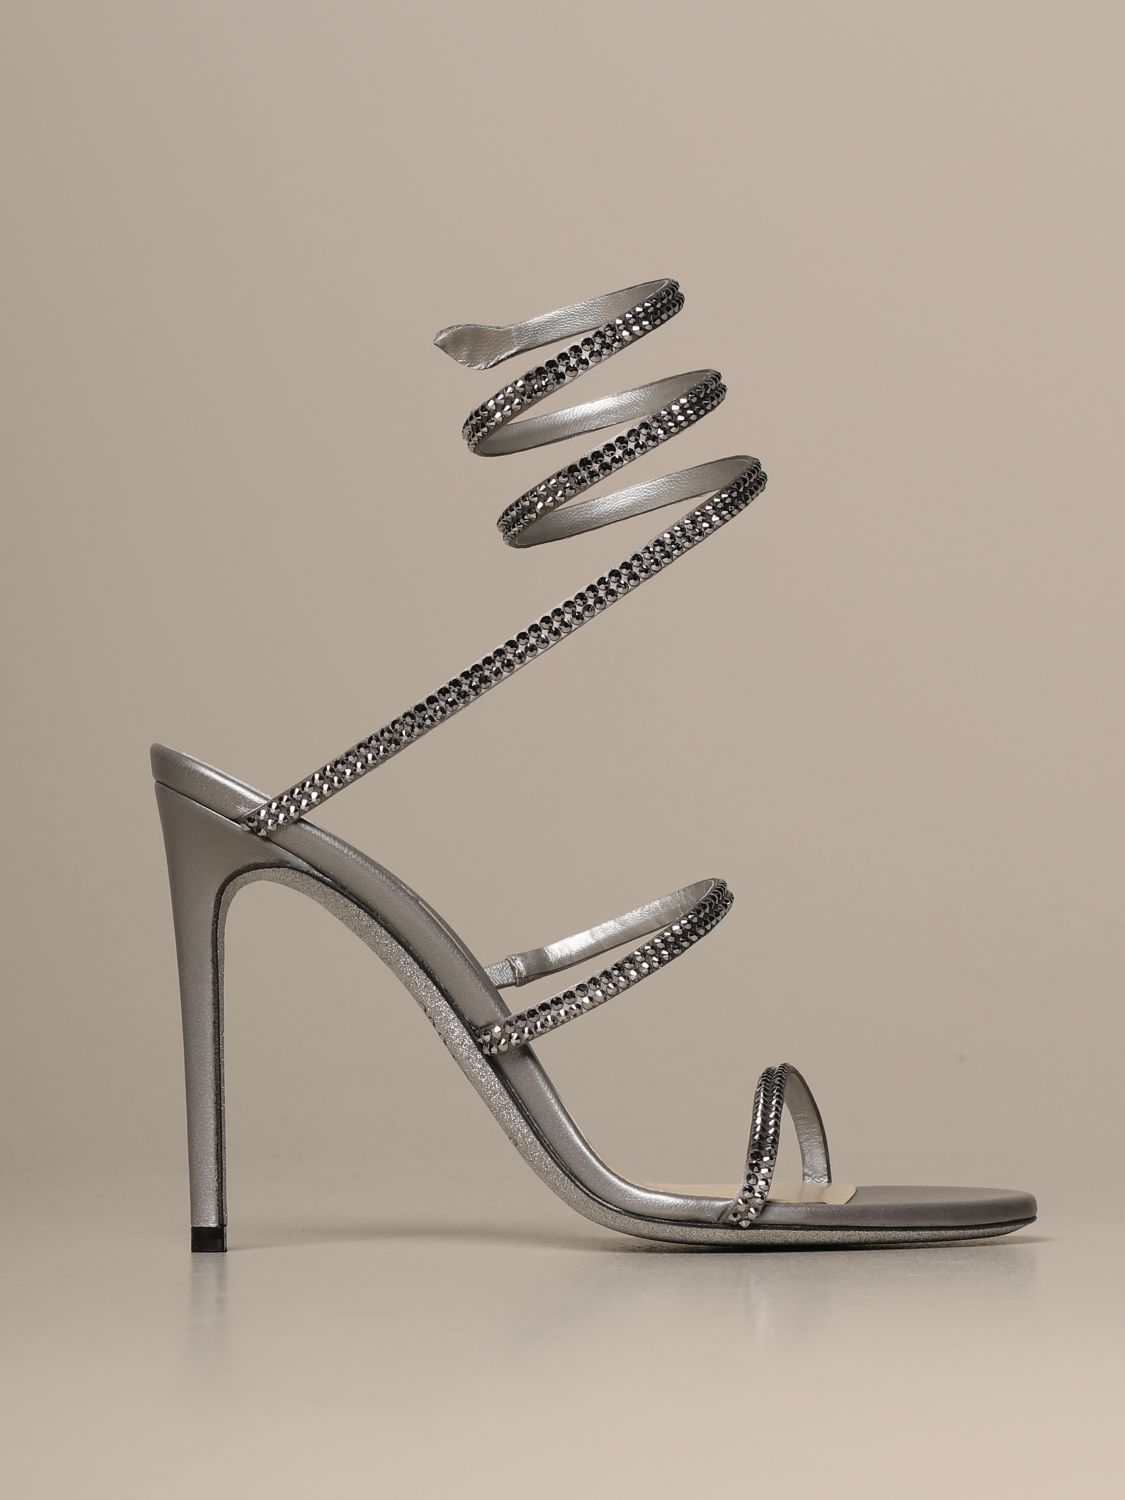 Heeled sandals Rene Caovilla: Cleo Snake René Caovilla sandal in satin with crystals silver 1